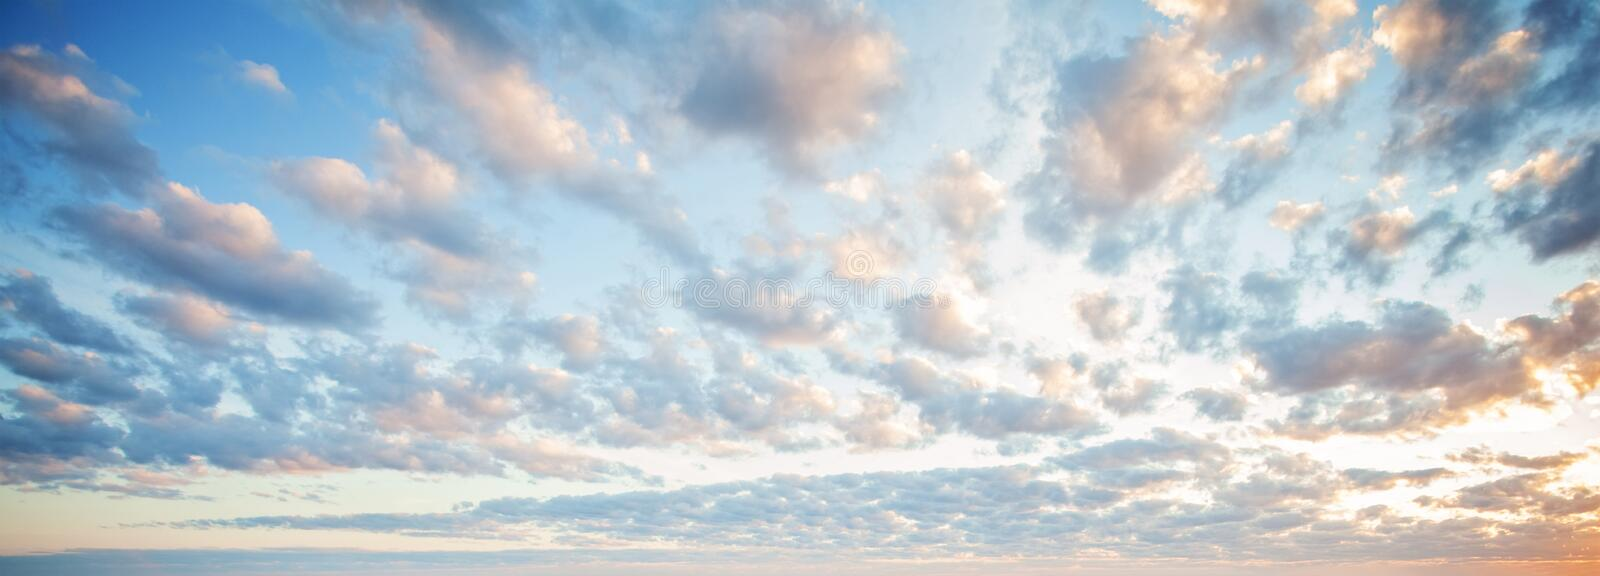 Blue sky clouds background. Beautiful landscape with clouds and orange sun on sky.  stock photos